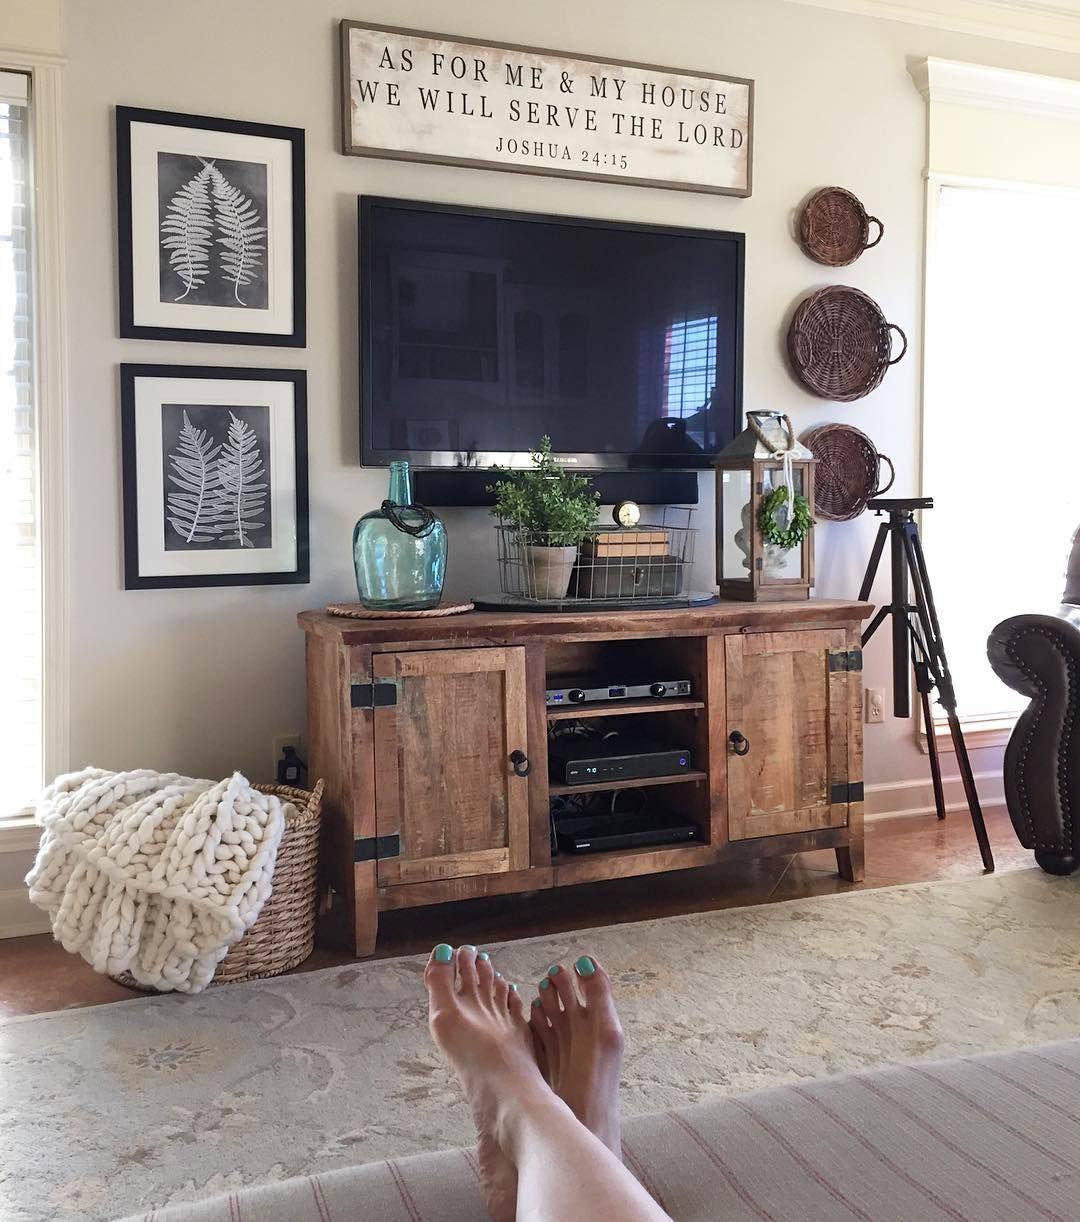 Beautiful Picture Of Home Decor Baskets Living Room Home Decor Baskets Living Room Decorating Around Home Decor Baskets Farm House Living Room Decor Around Tv